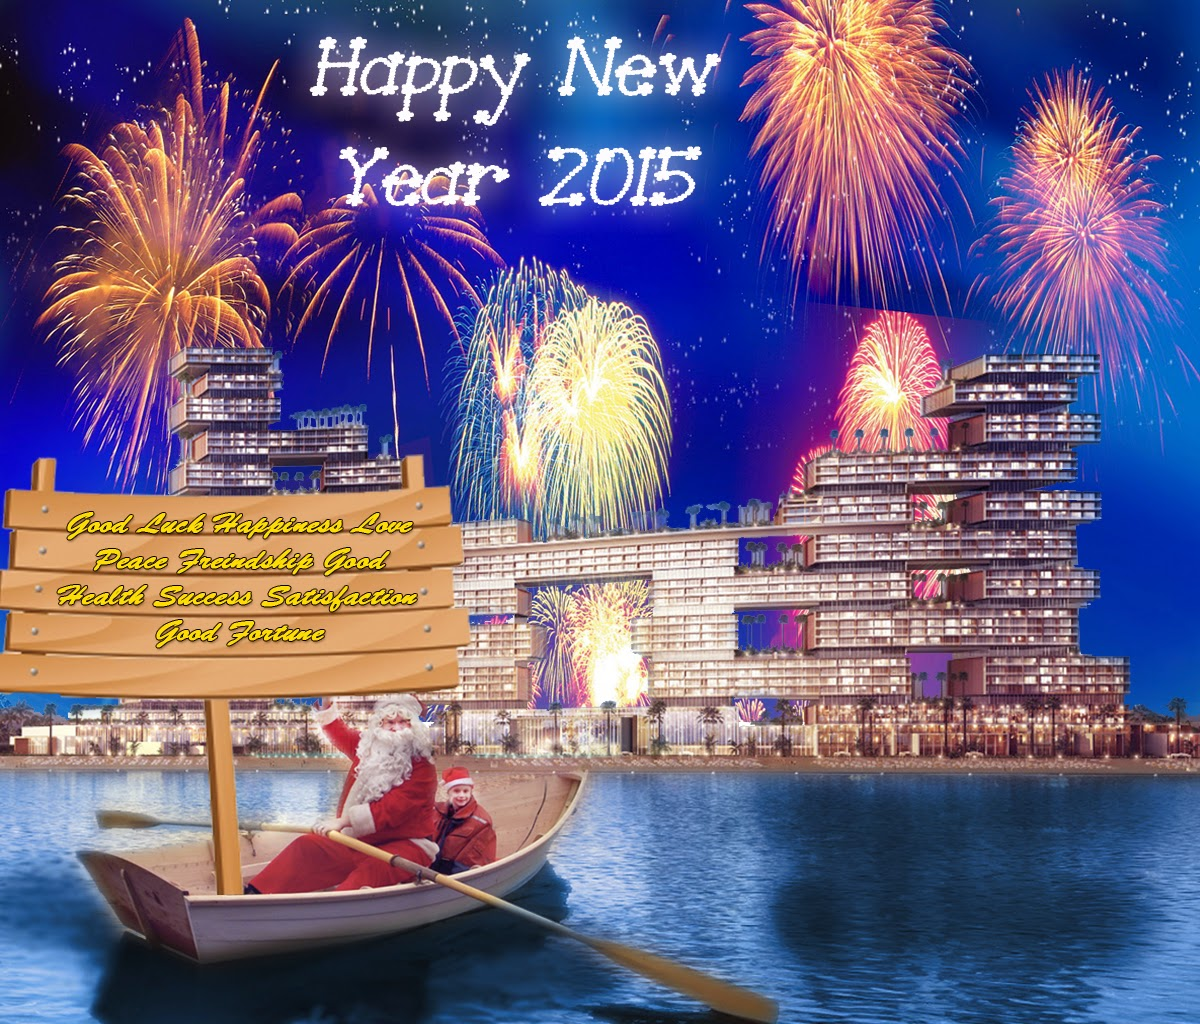 happy new year firework with dubai uae upcoming new project greeting card